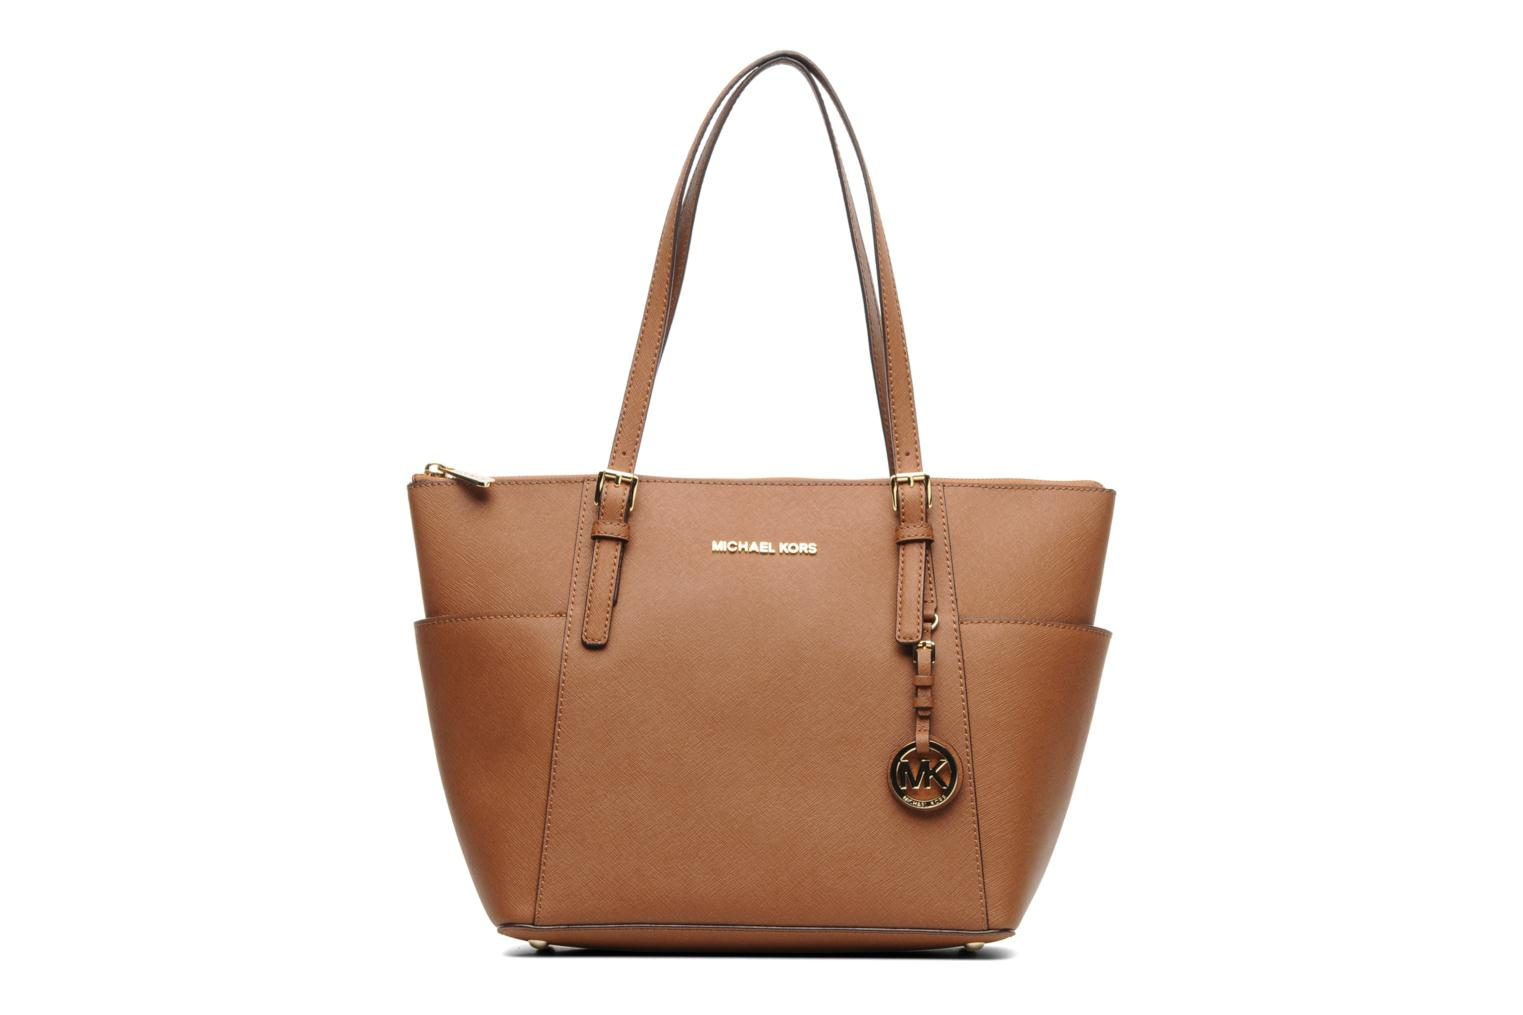 JET SET EW TZ Tote Saffiano Luggage